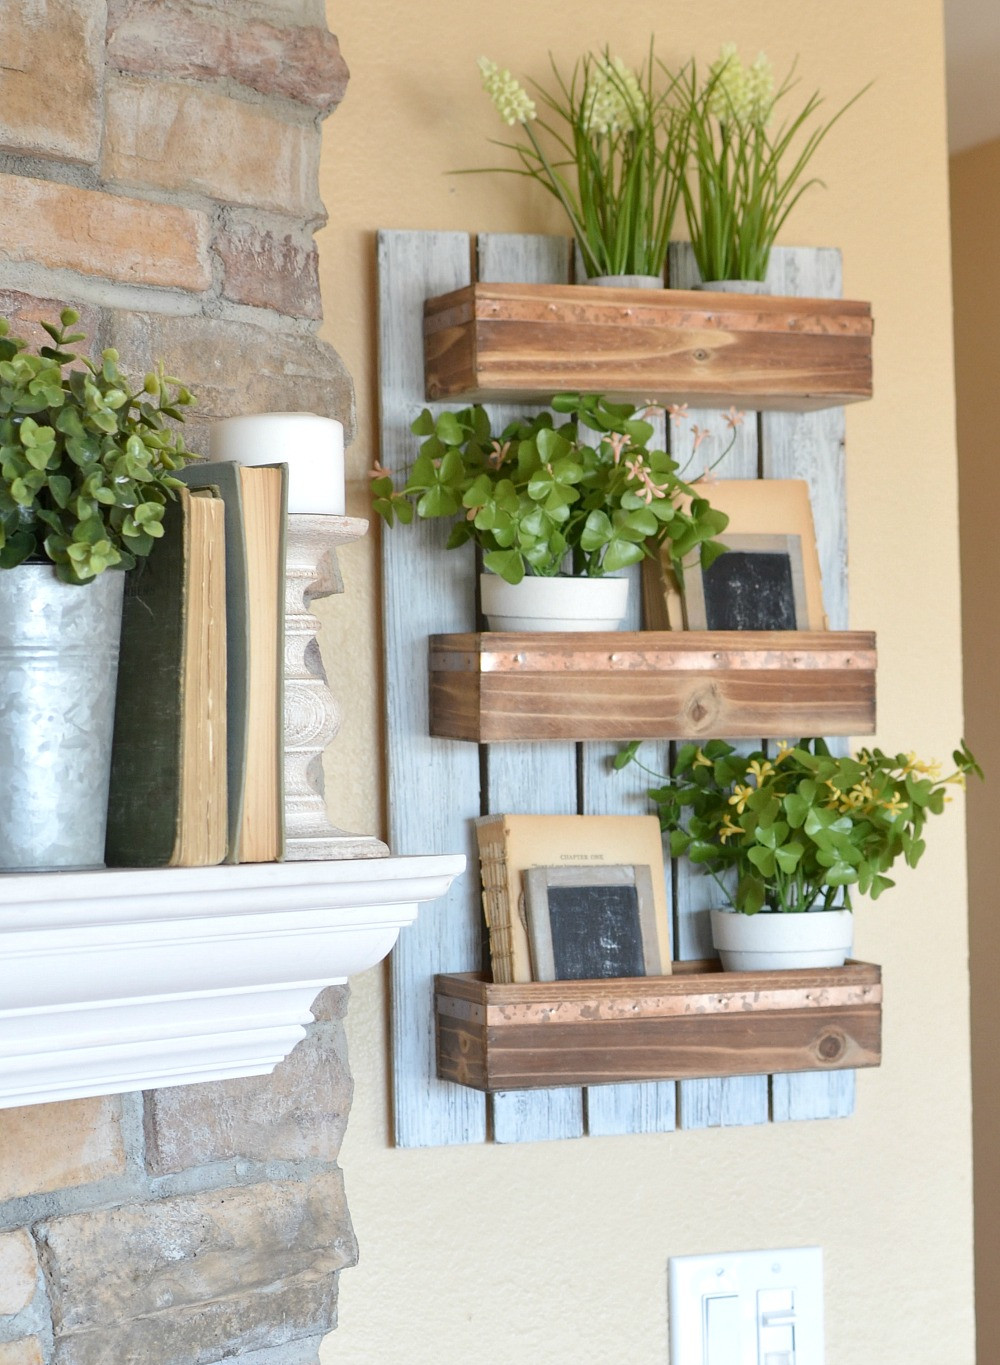 Best ideas about DIY Wood Planter . Save or Pin DIY Wooden Wall Planter Little Vintage Nest Now.